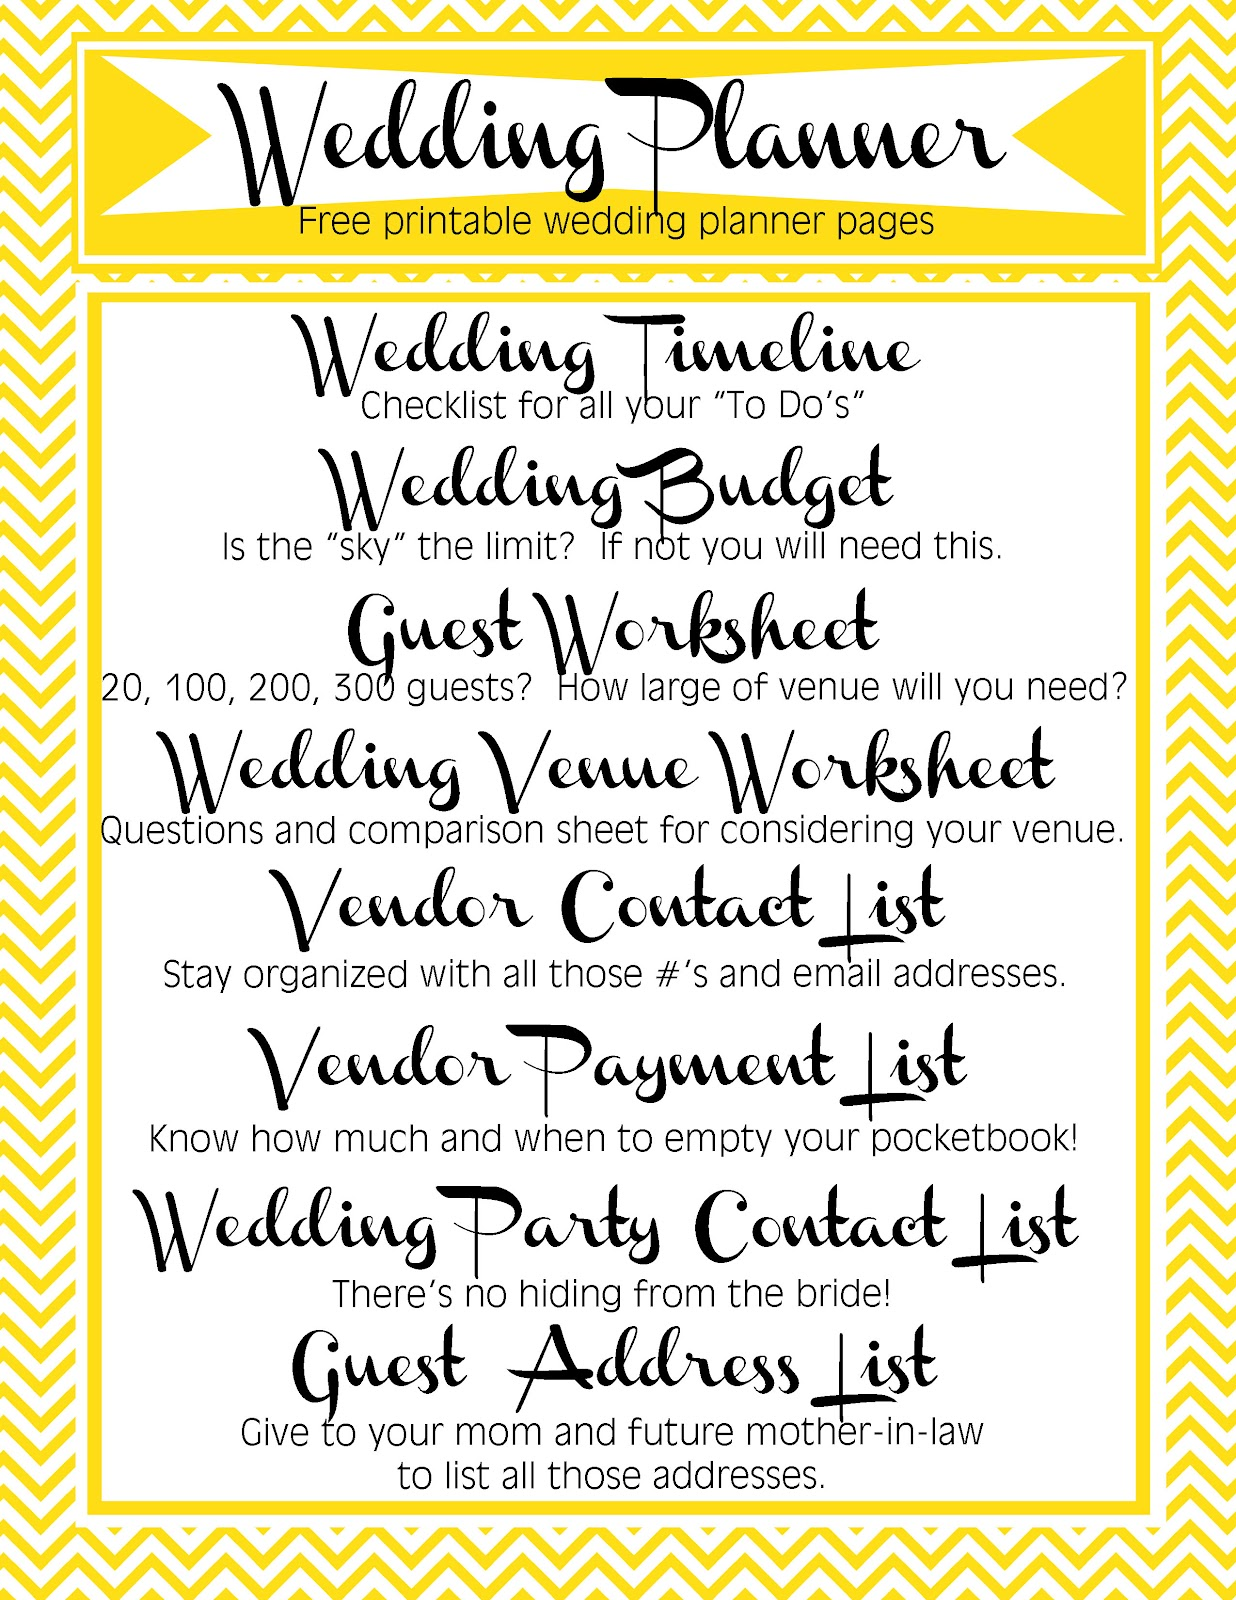 http://3.bp.blogspot.com/-tJ1yWL79N48/T-SWaJeF-mI/AAAAAAAAAl0/dCCQhf2La_s/s1600/Wedding%20Planner%20Template%20Pages%20Printable%20DIY%20Free%20Timeline%20Budget%20Guest%20Lists%20Venue%20Worksheet%20Vendor%20Contact%20and%20Payment%20list%20wedding%20party%20contact%20list.jpg